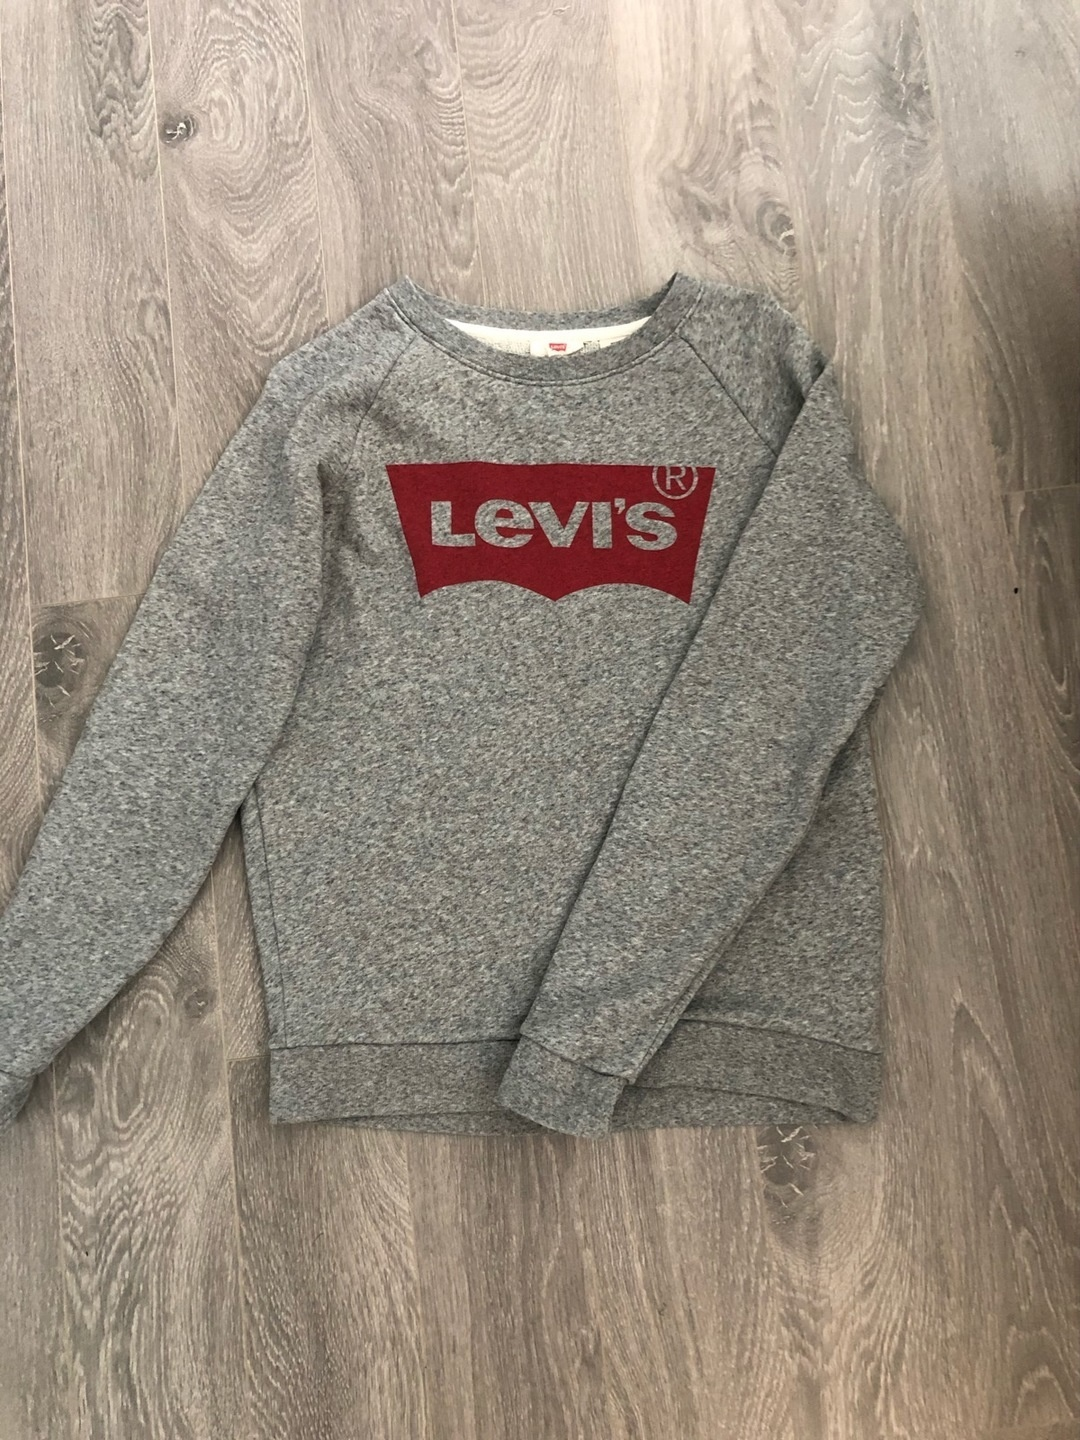 Damen kapuzenpullover & sweatshirts - LEVI'S photo 1